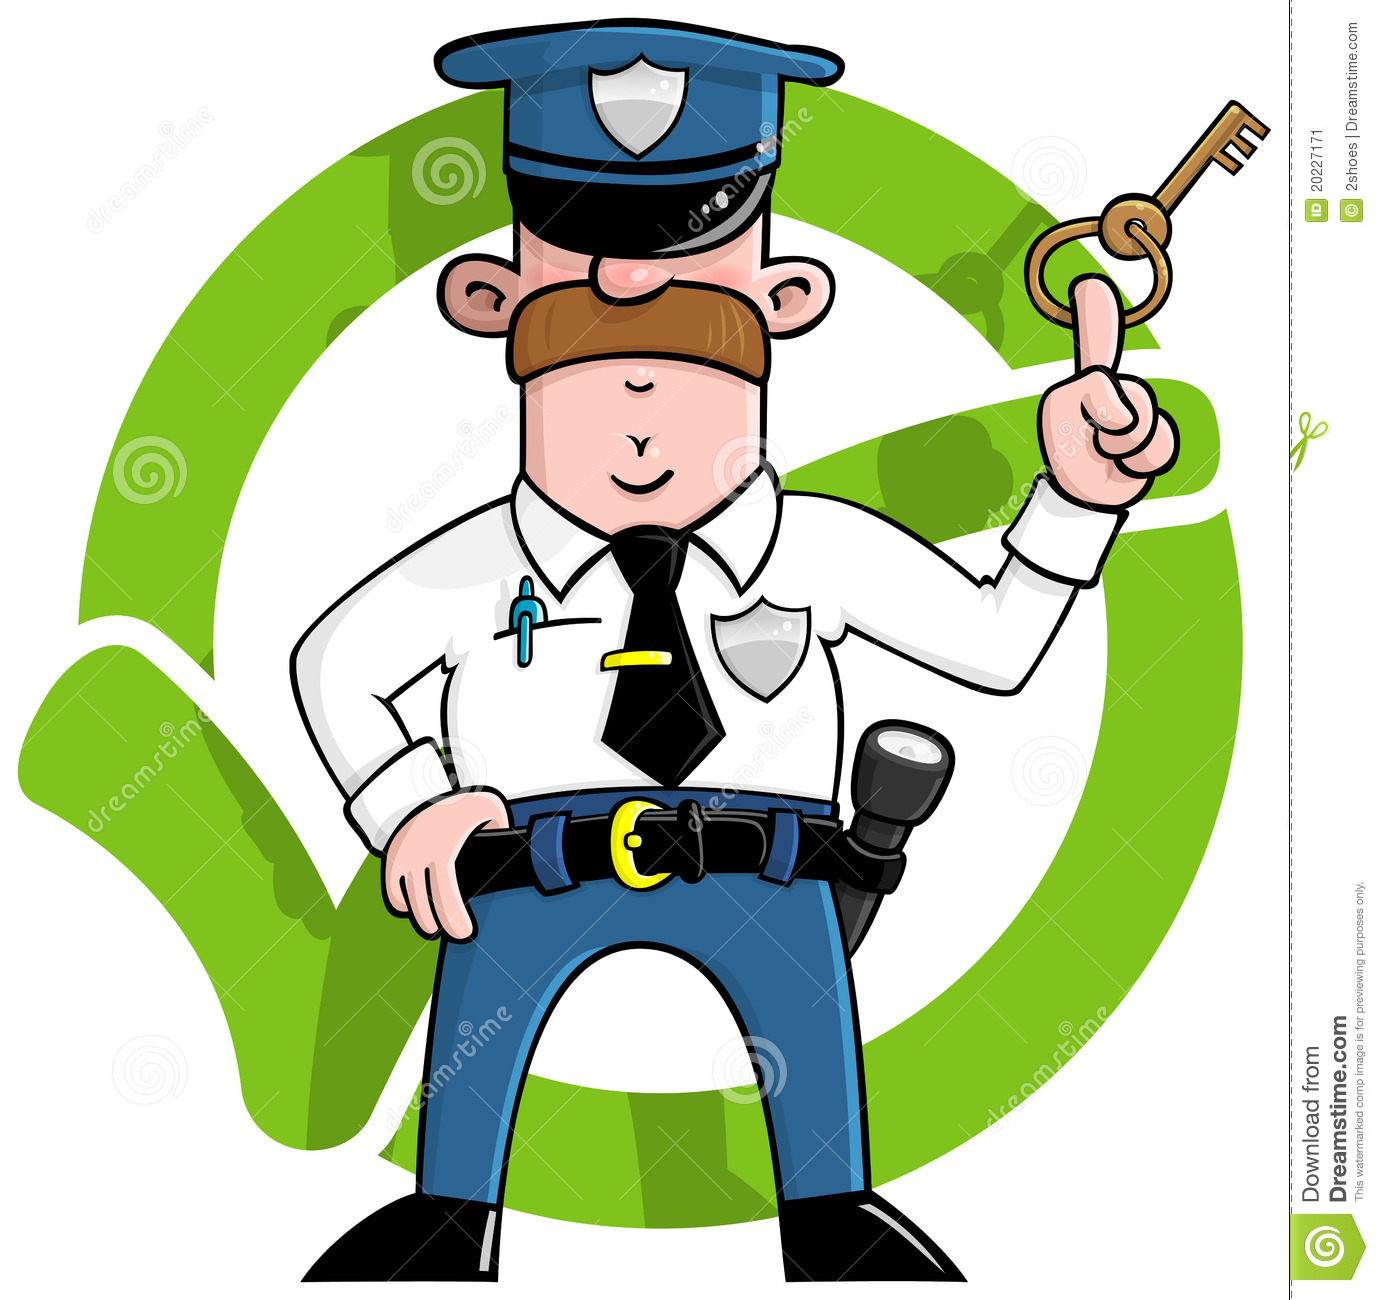 watchman clipart - photo #9